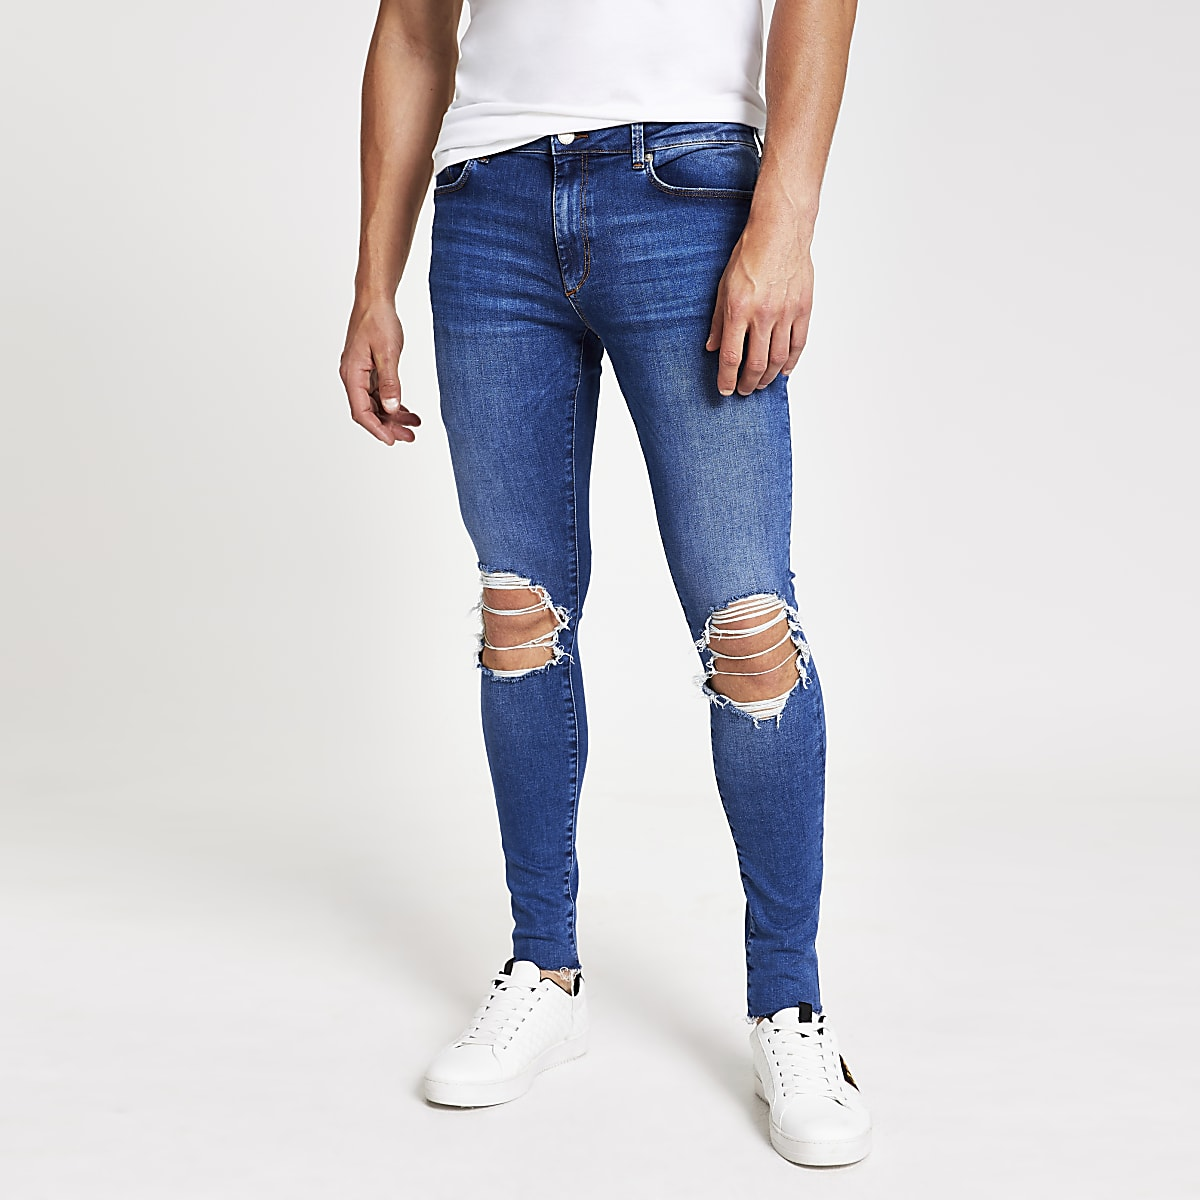 Middenblauwe spray-on ripped skinny jeans